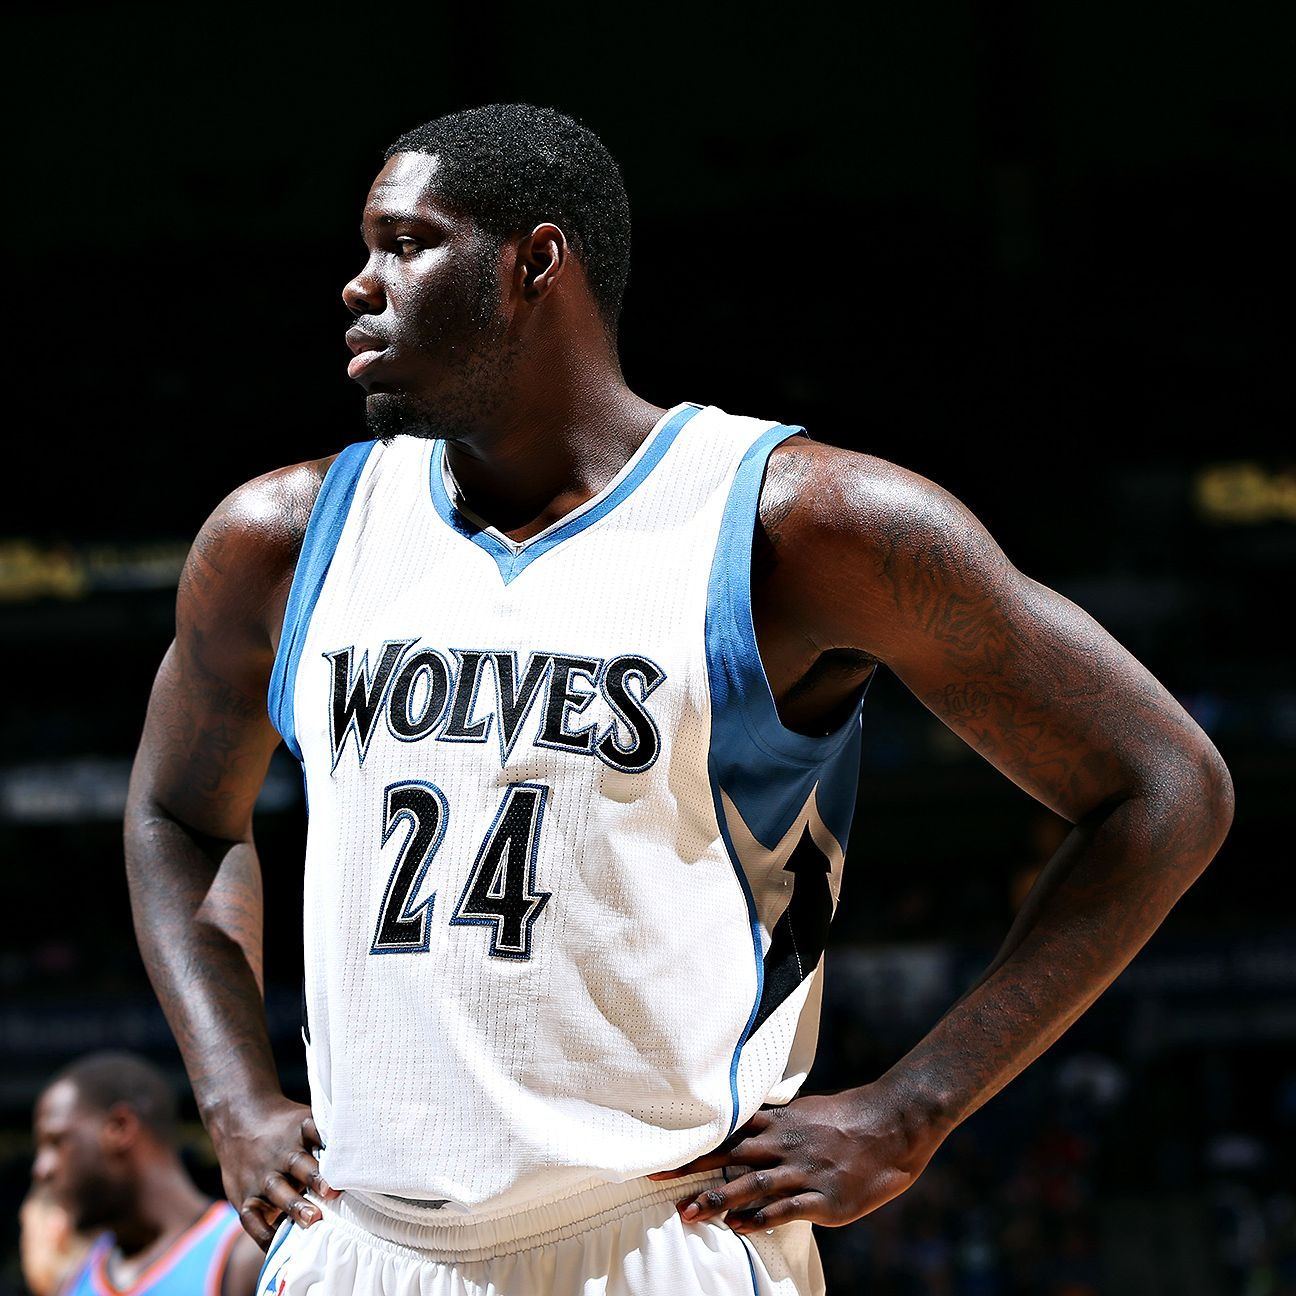 Anthony Bennett of Minnesota Timberwolves available in trade